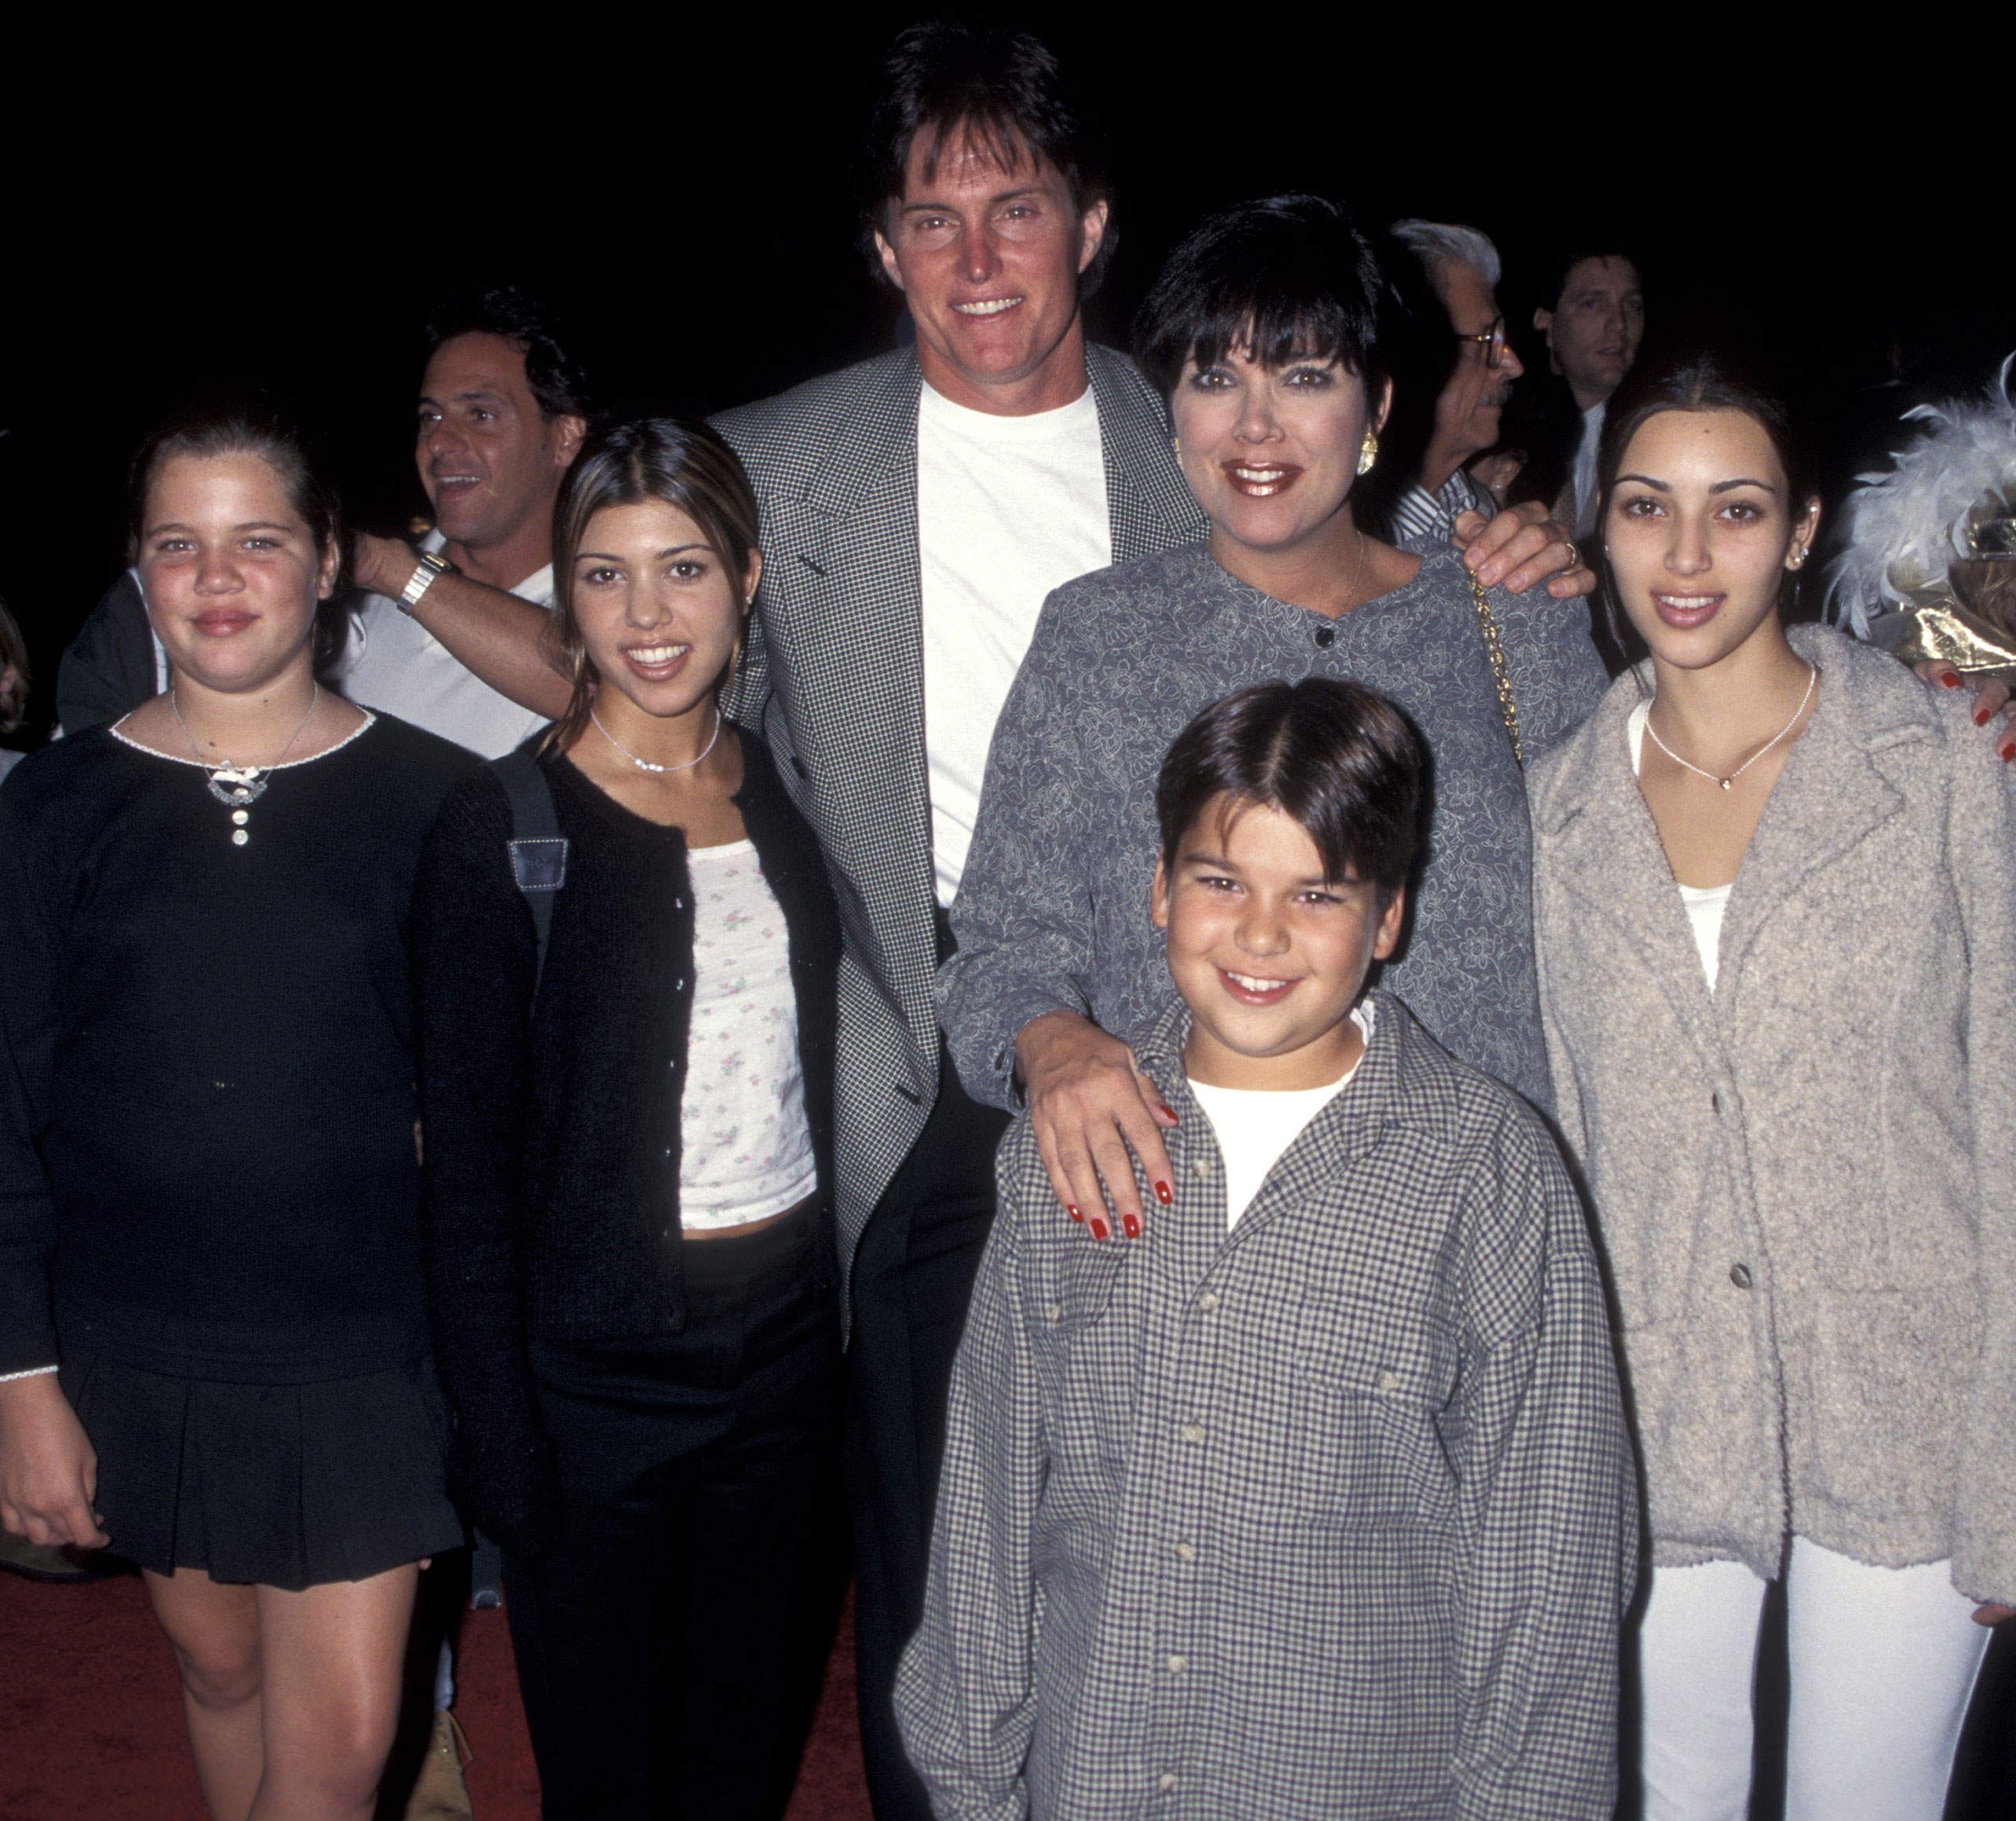 Kourtney Kardashian Through the Years - Years before red carpets would become a weekly occurrence, Kourtney attended a Cinderella release party with her family in 1995.